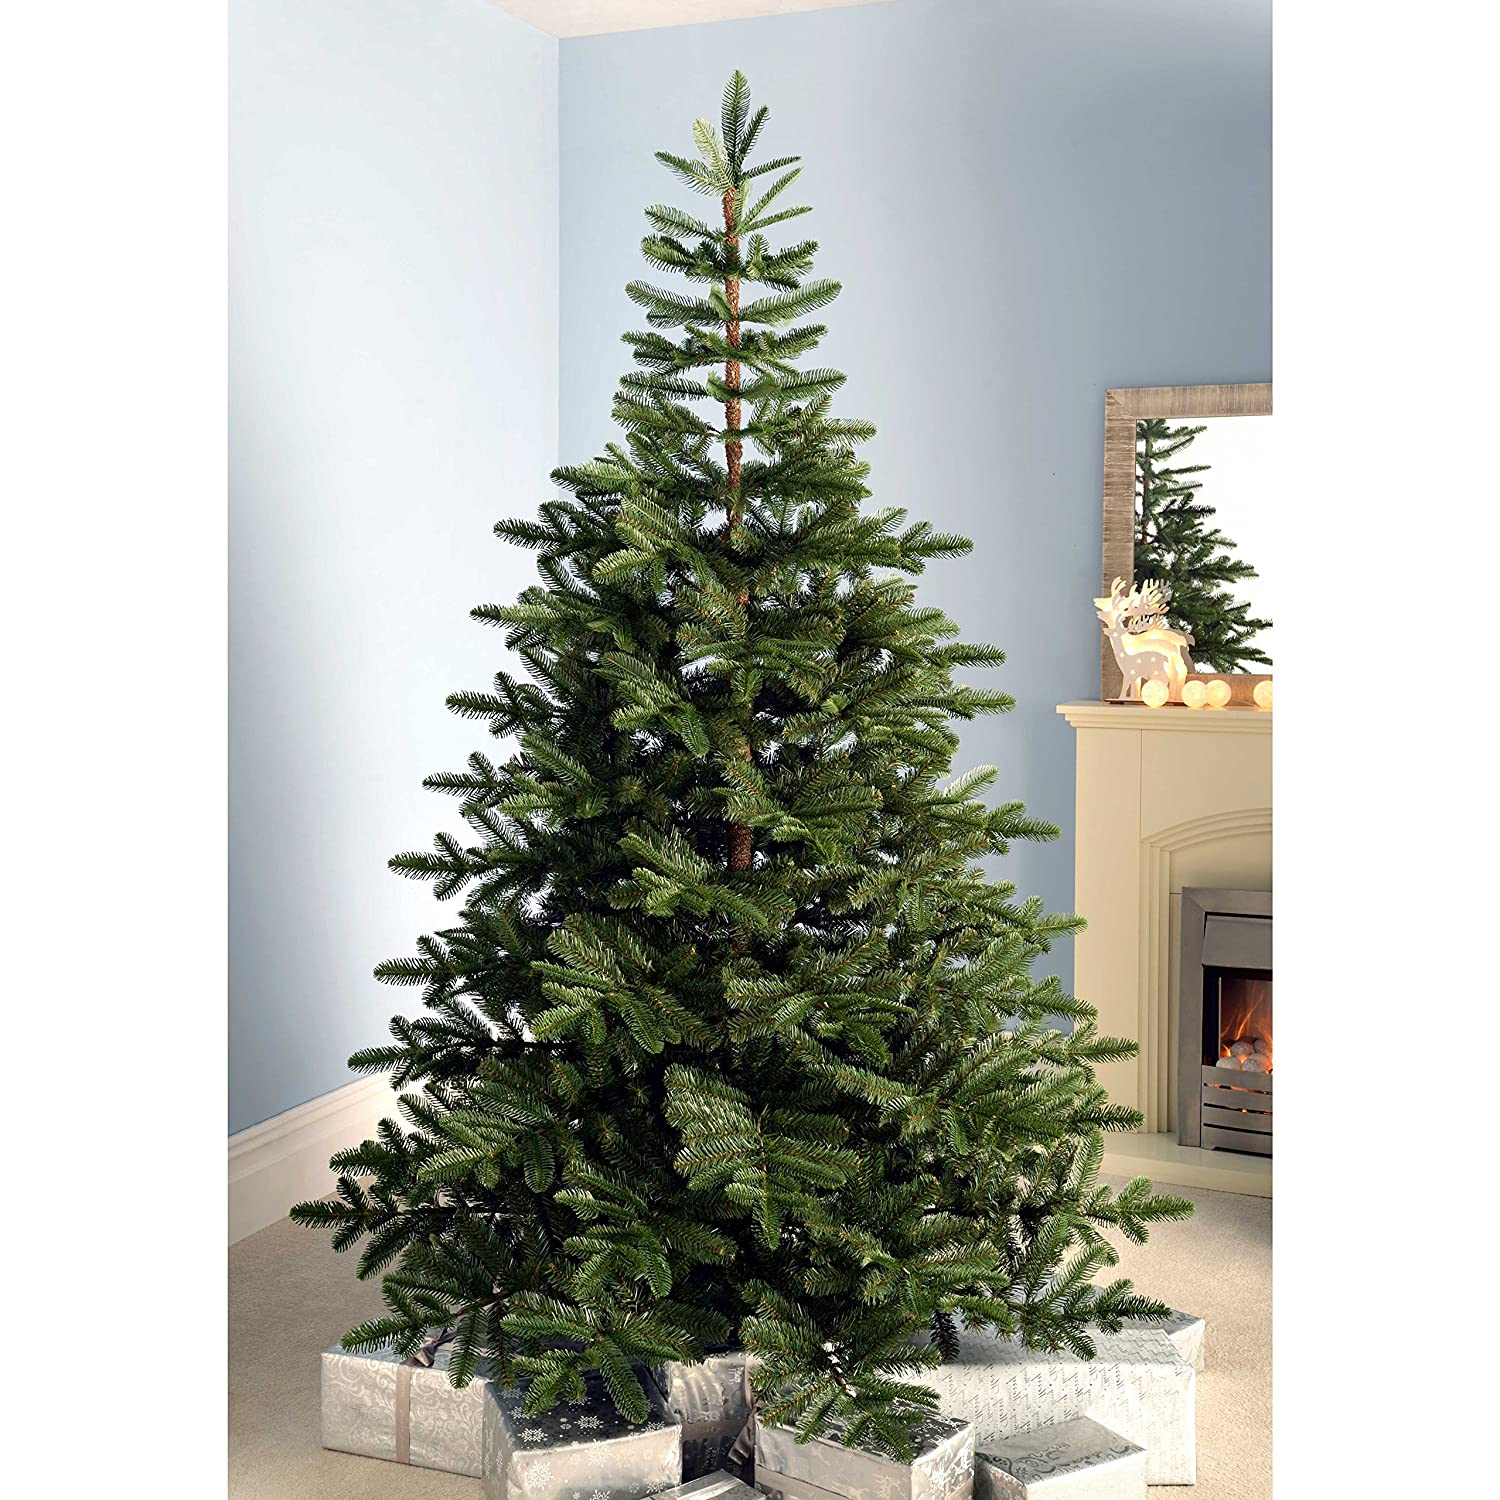 imperial pine artificial christmas tree 7ft 210cm by kaemingk olore - 7ft Artificial Christmas Tree